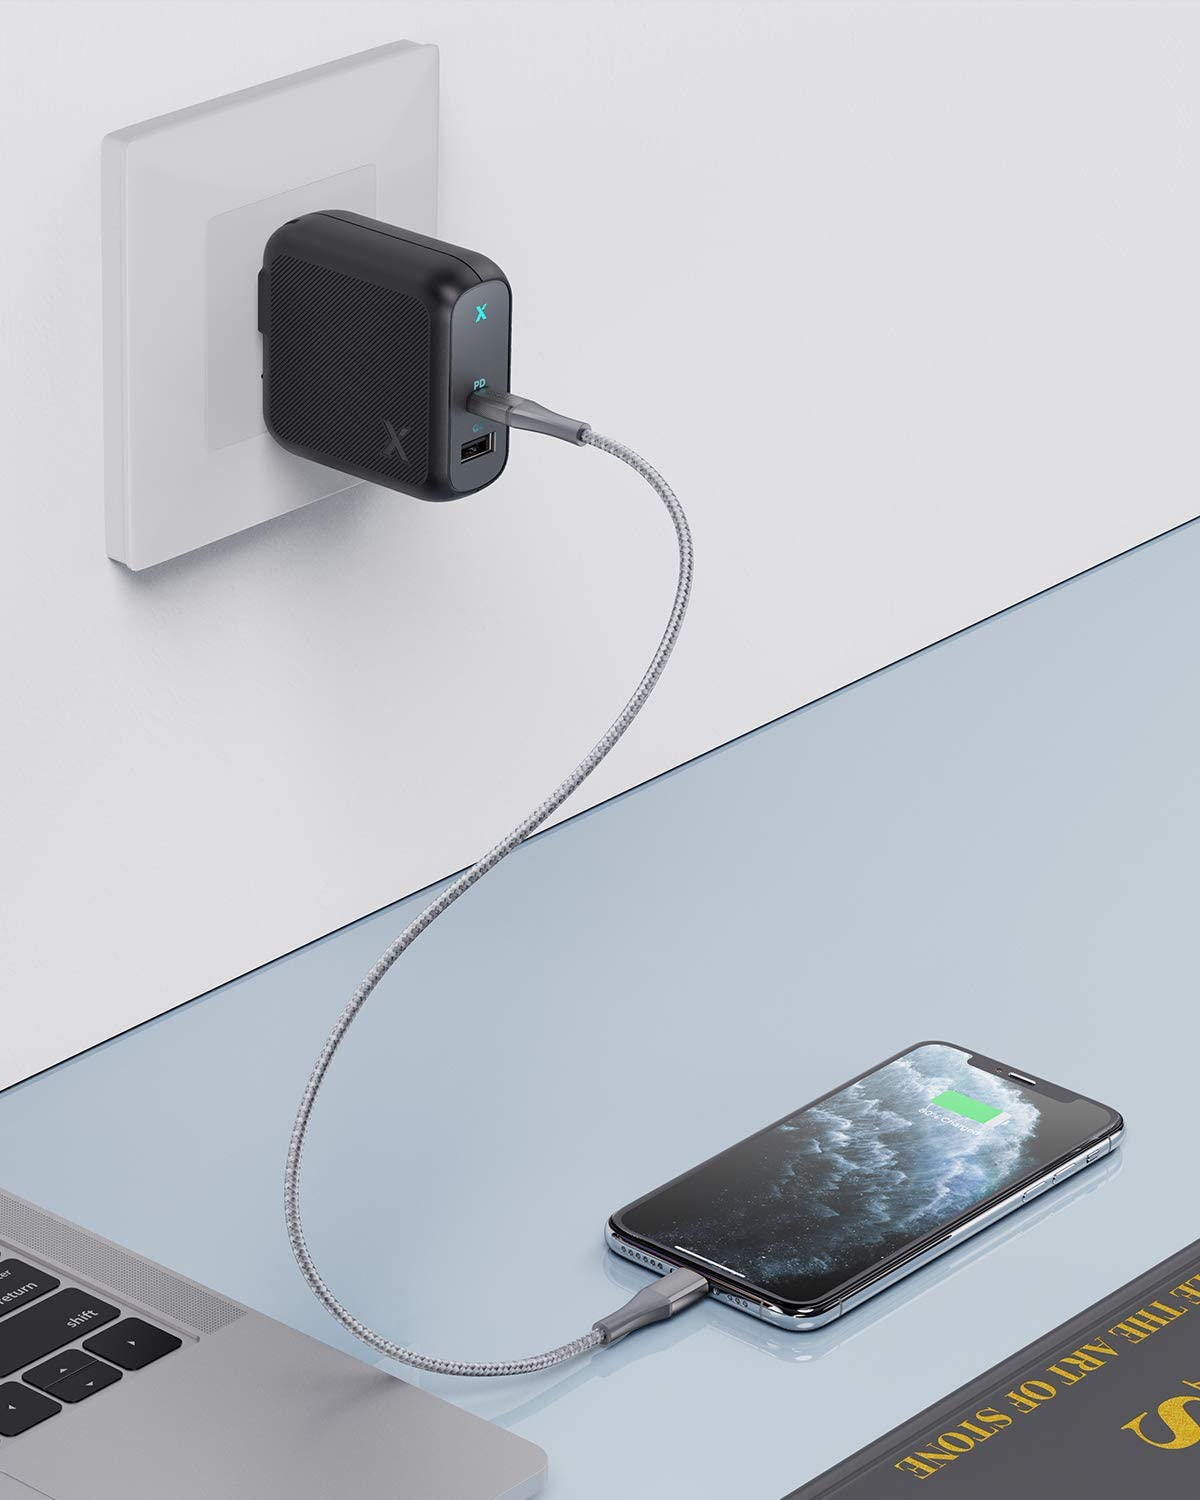 USB-C Wall Charger with 18W PD /& QC 3.0 for iPad Pixel 3//3XL Black Galaxy S9//Note 9 iPhone 11//Pro//XS//Max//XR//X USB C Charger Xcentz 36W Power Delivery Fast Charger USB-C Power Adapter and More